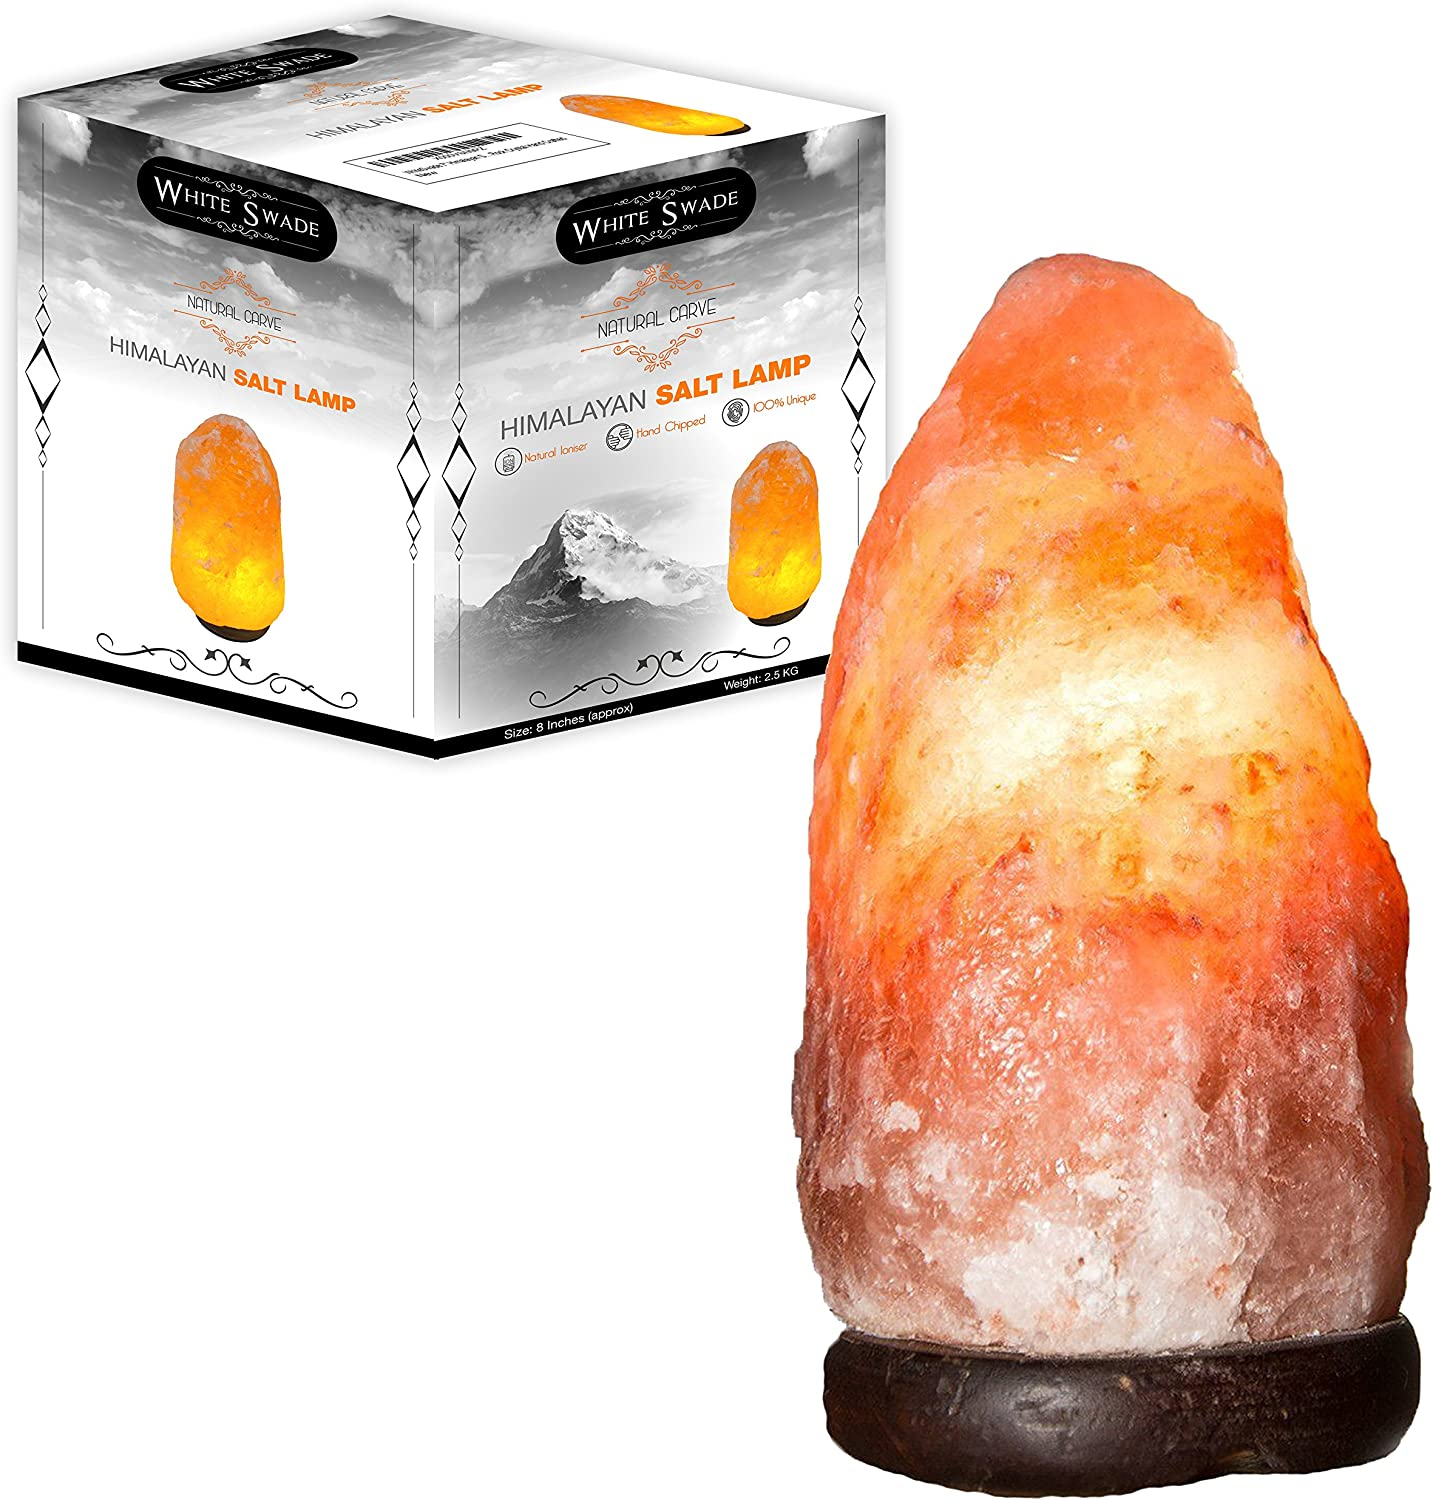 WhiteSwade Large Pink Crystal Himalayan Salt Lamp with UL CERTIFIED Dimmer Switch. Neem Wood Base and 15W Bulb, 6 ft Cord. Air Ionizer and Purifier. Perfect Gift Idea. Popular Feng Shui Decor